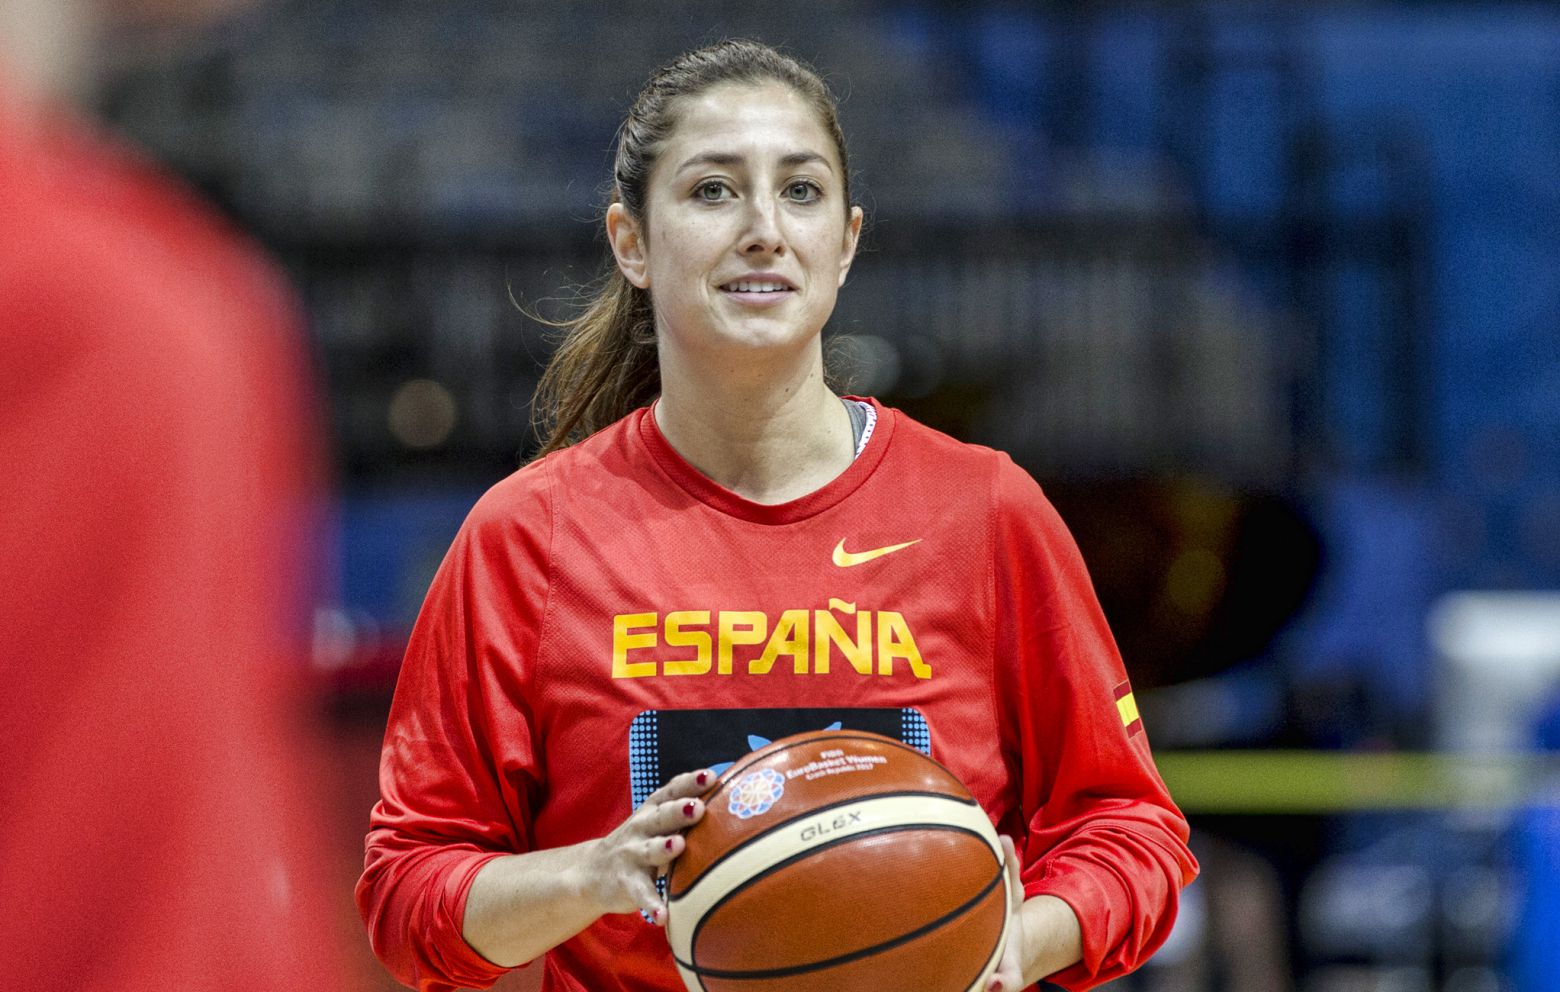 LEONOR RODRÍGUEZ has signed in Italy with Famila Schio